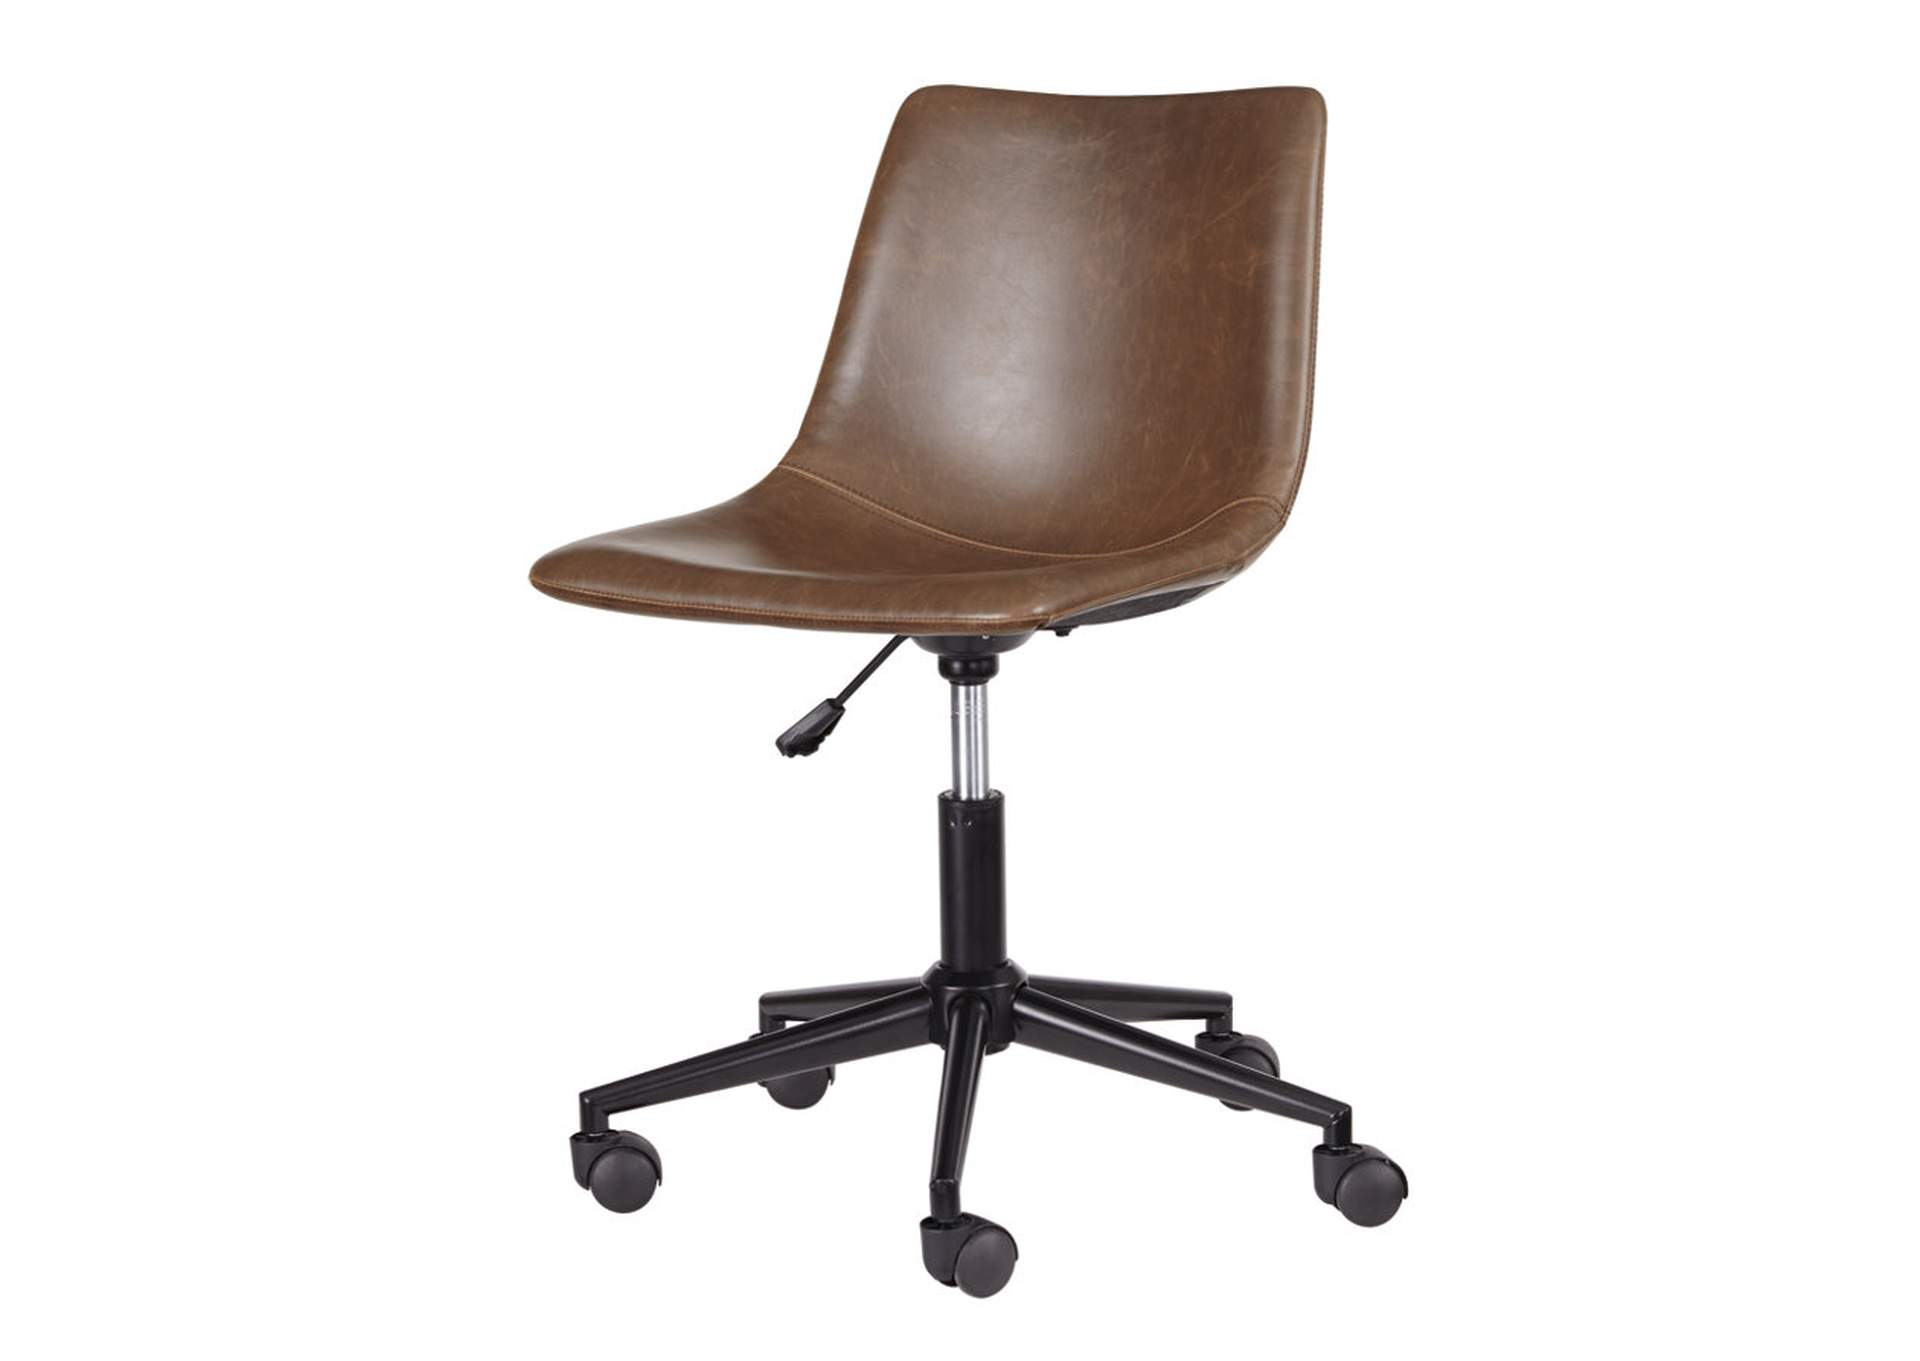 Goreeu0027s Furniture   Opelika, AL Office Chair Program Brown Home Office  Swivel Desk Chair